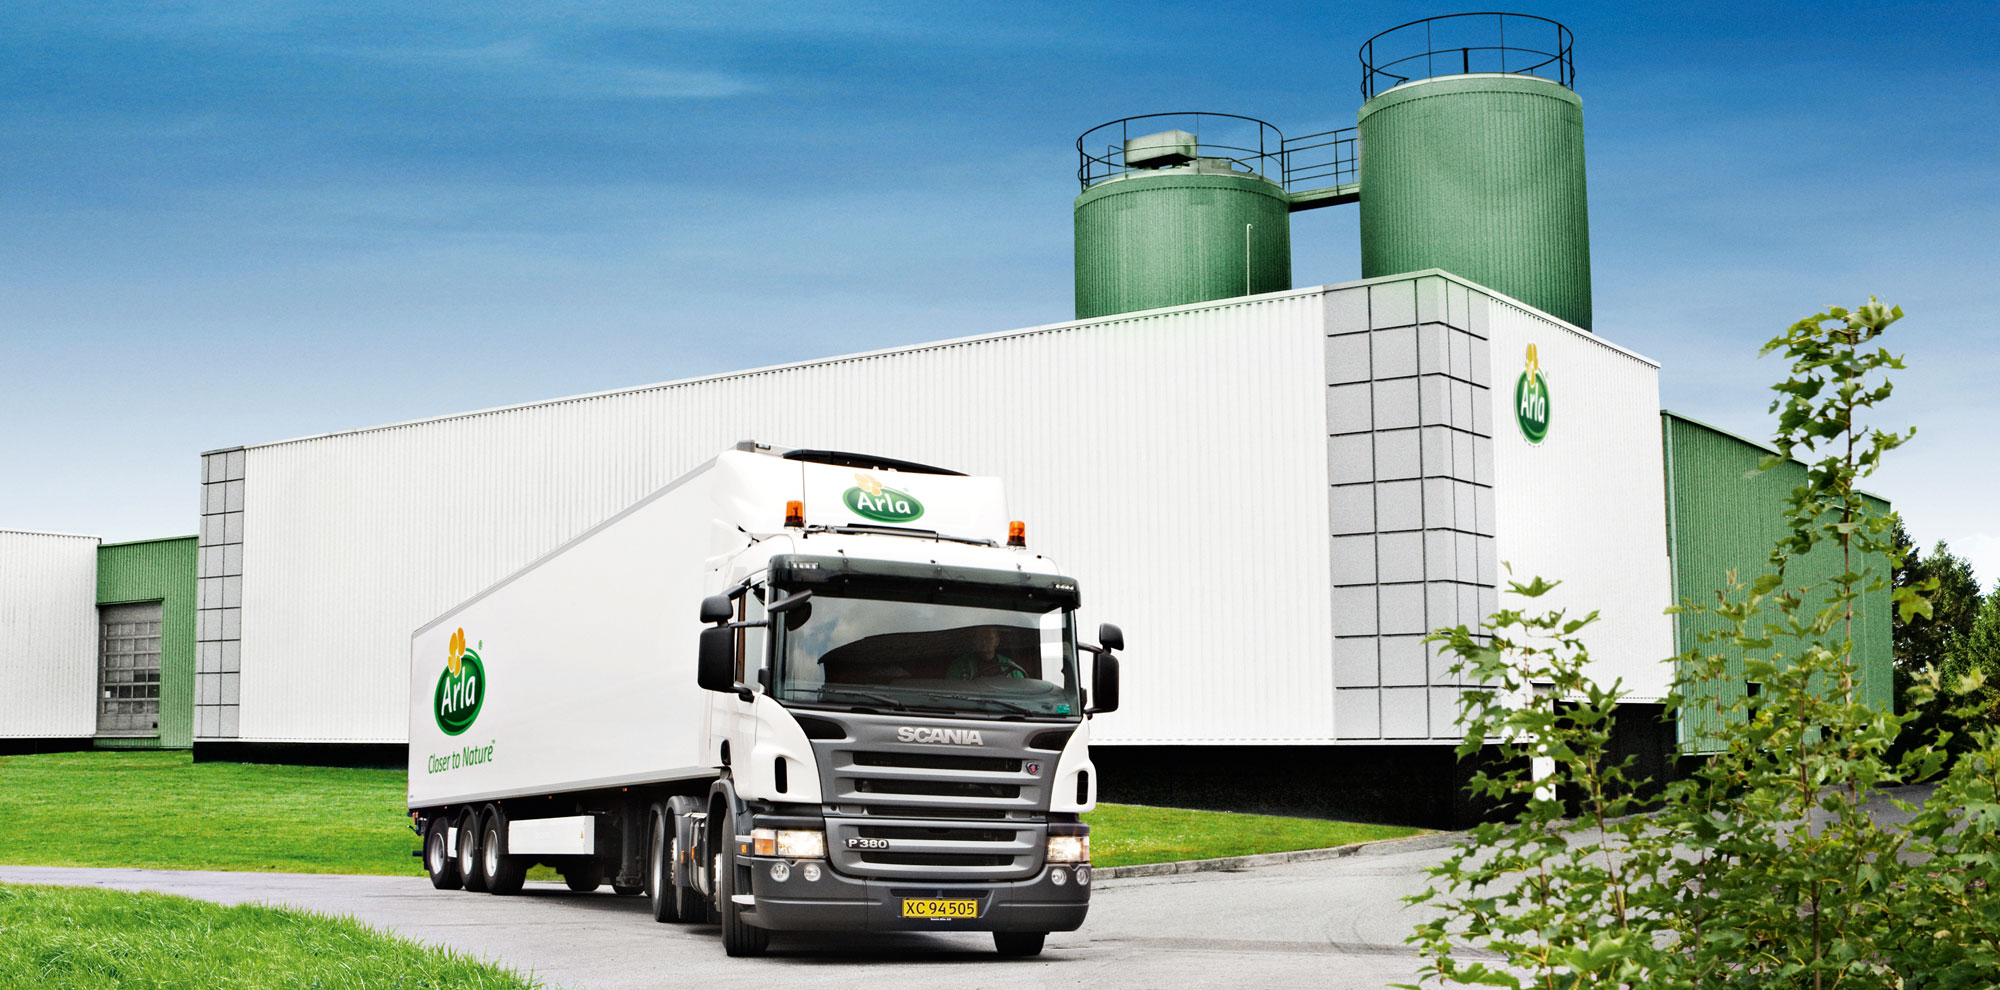 Arla to expand production in 2013